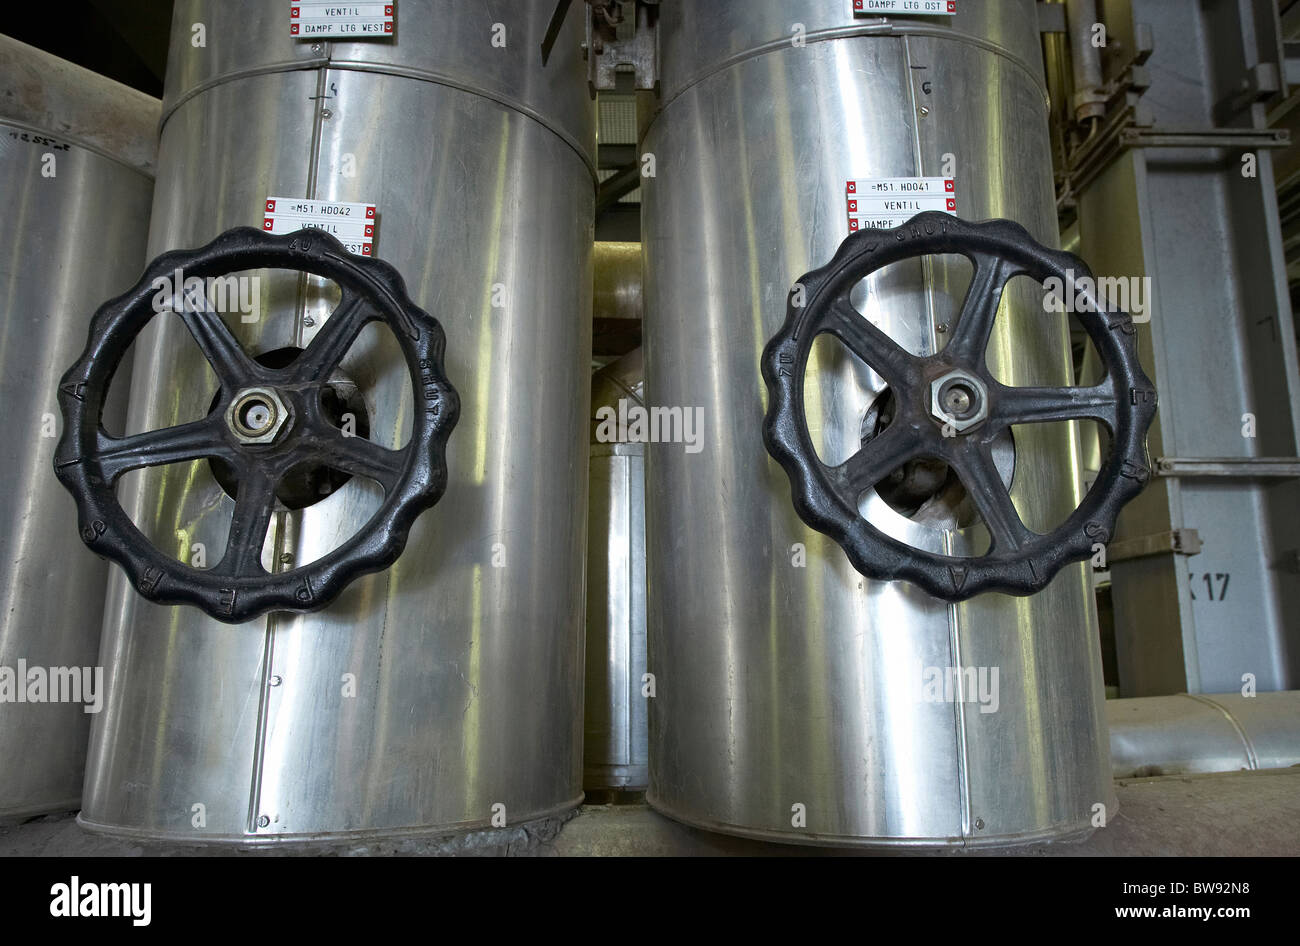 Steam distribution station of Ruhleben sewage treatment plant, Berlin, Germany - Stock Image